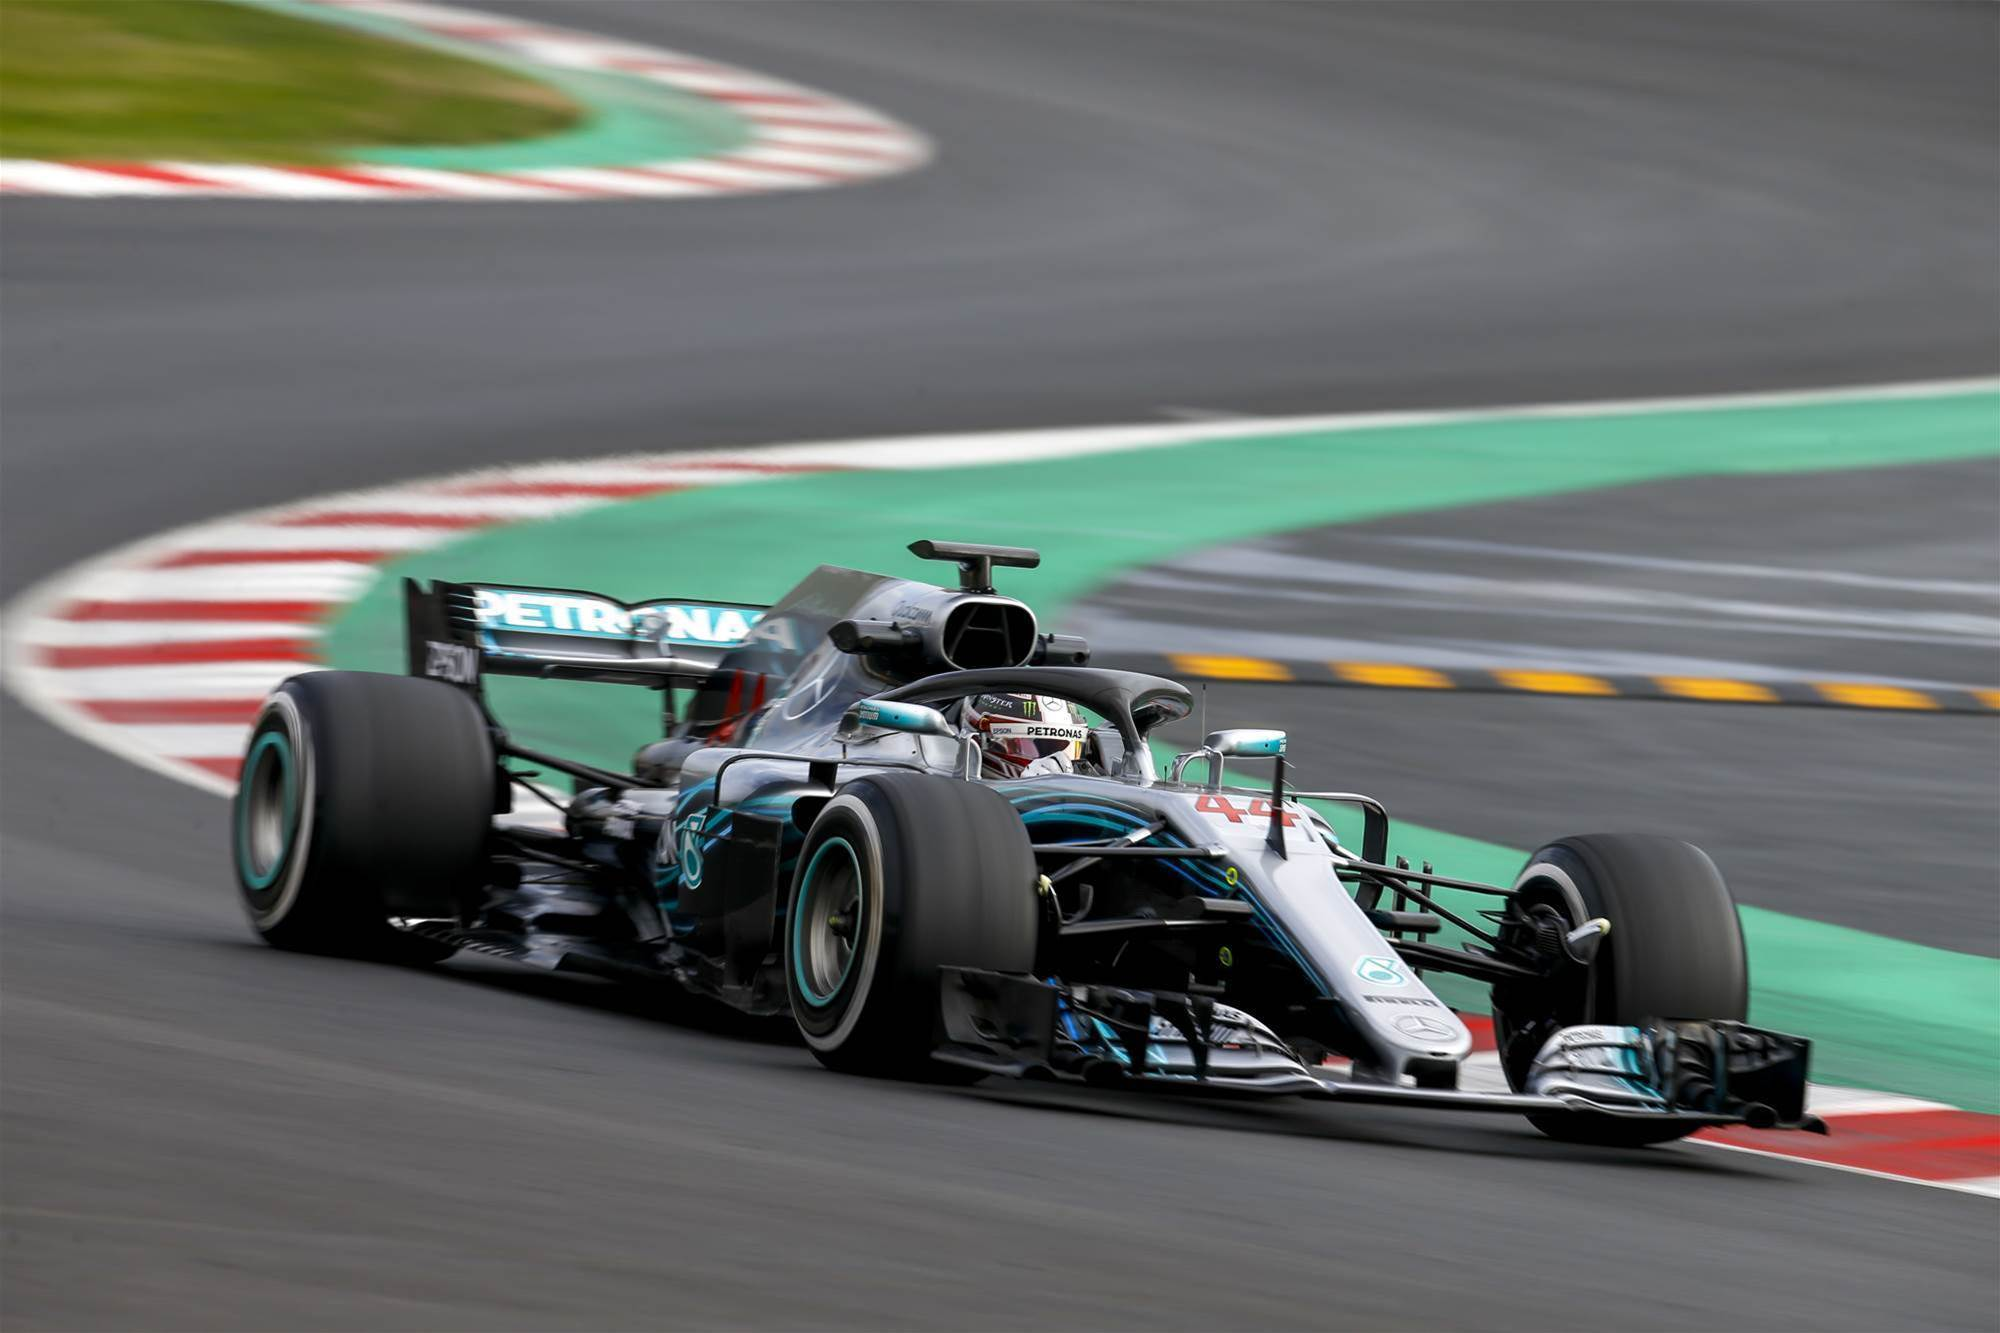 Lewis tops final day of opening F1 test